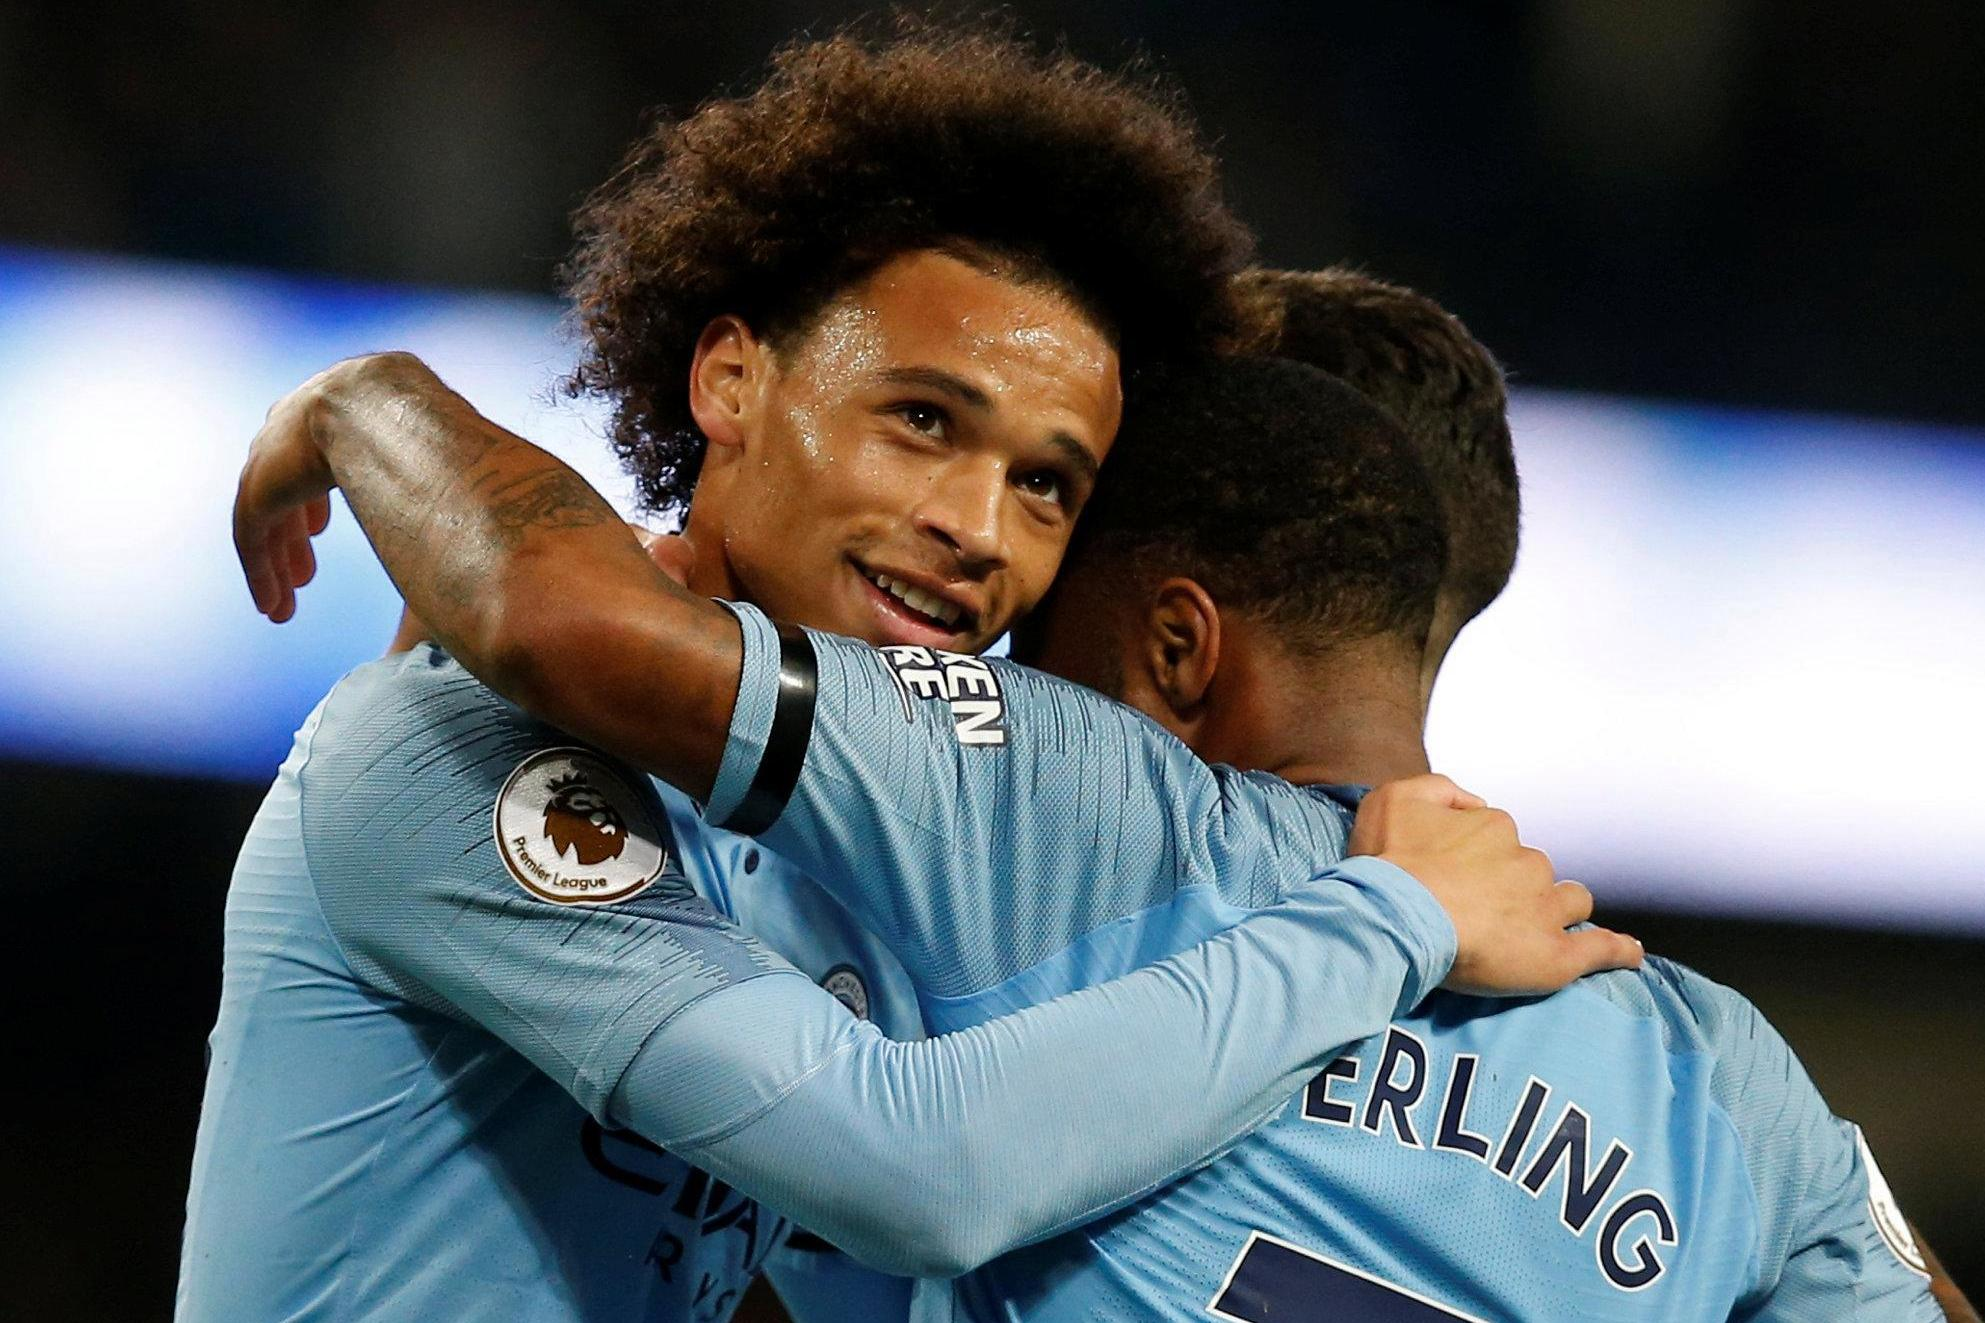 Watford vs Man City: Betting tips, odds and prediction for Premier League clash